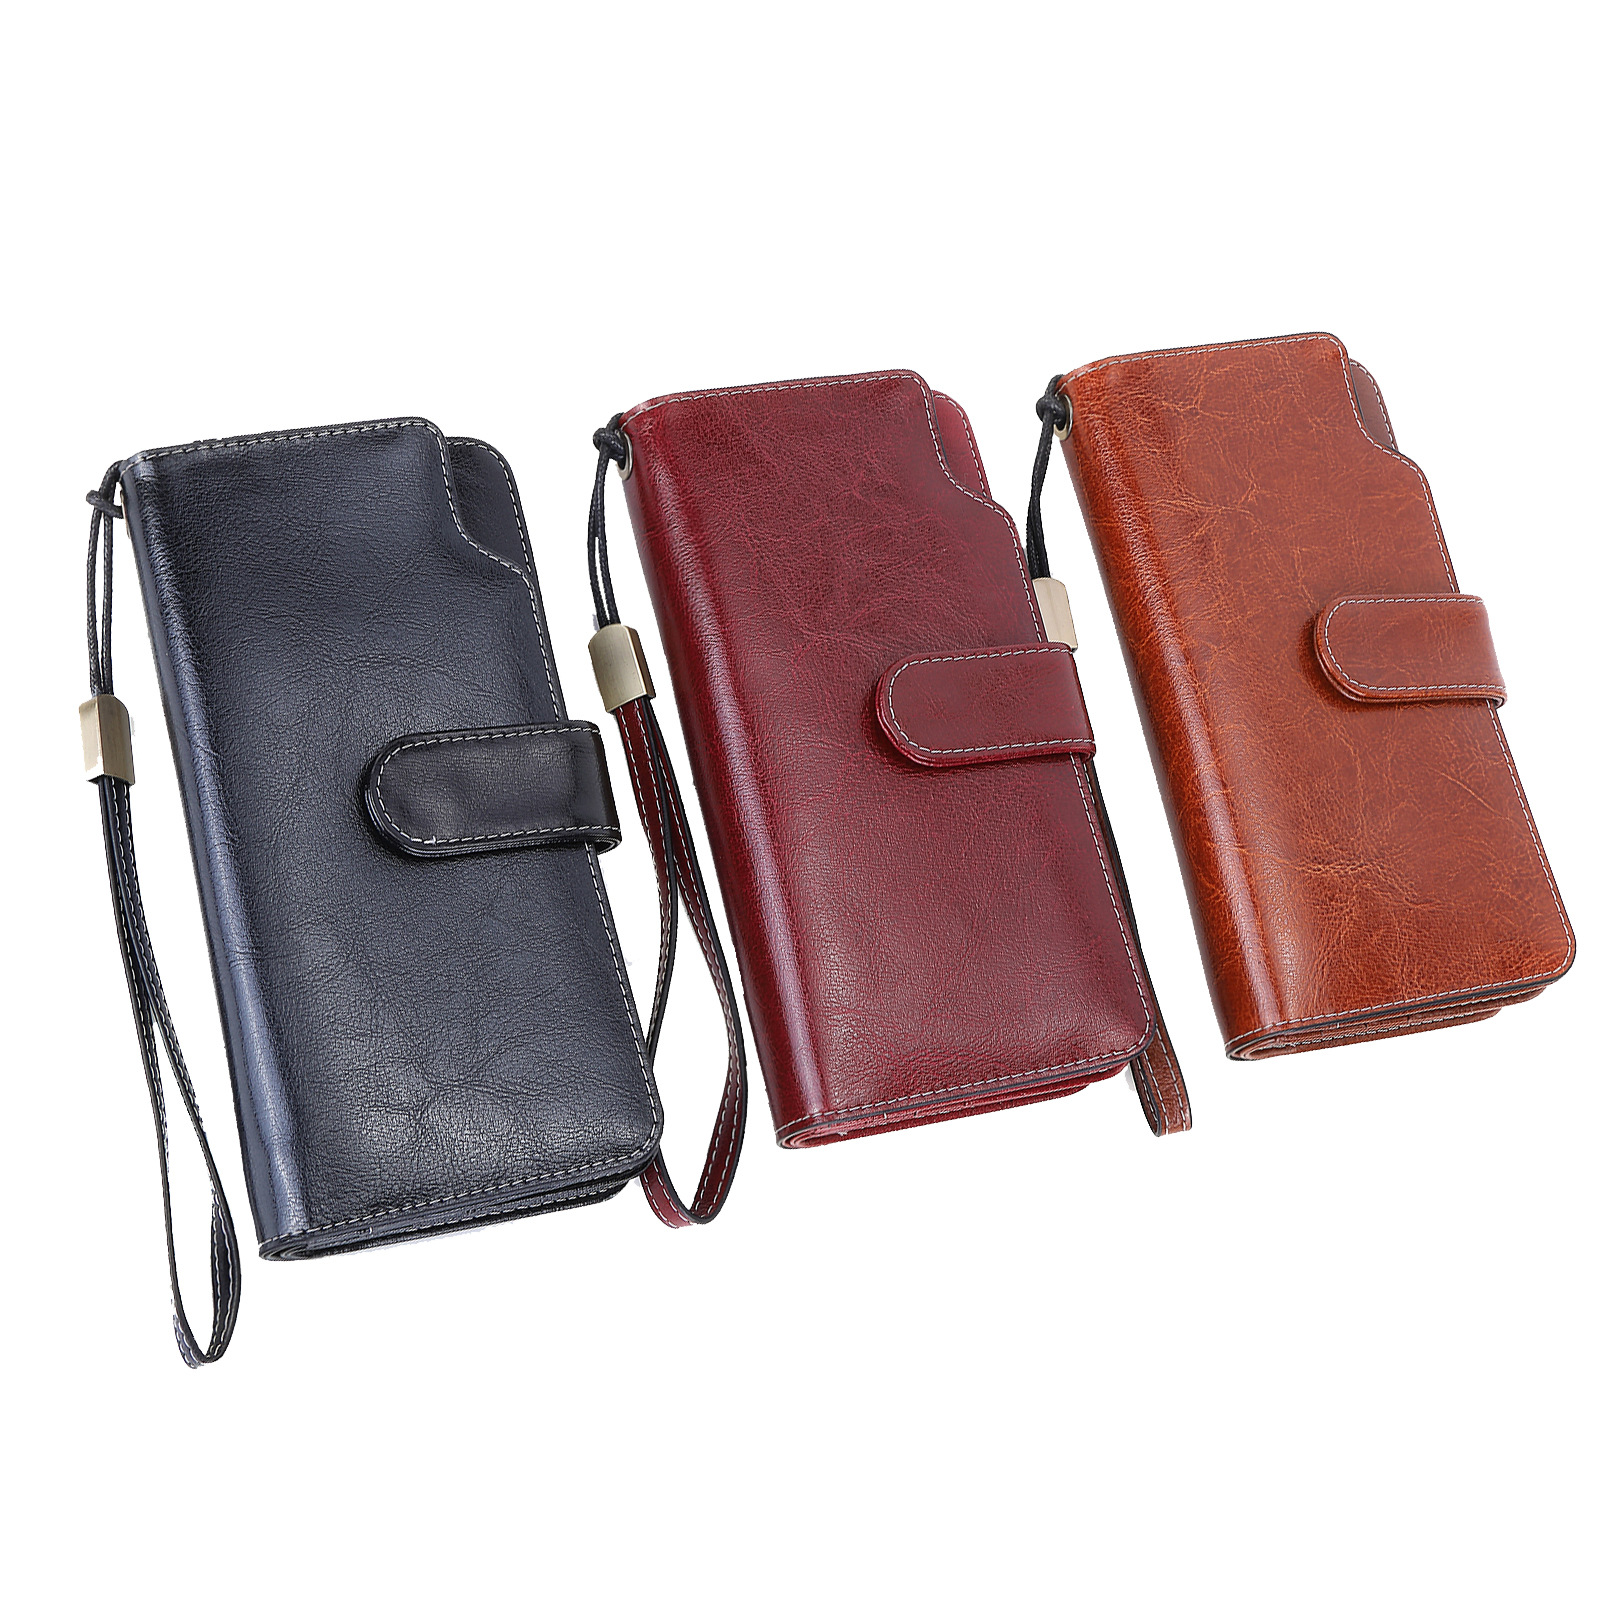 GROJITOO Oil wax cowhide women's wallet long Korean style women's handbag multi-card genuine wallet women's wallet handbag